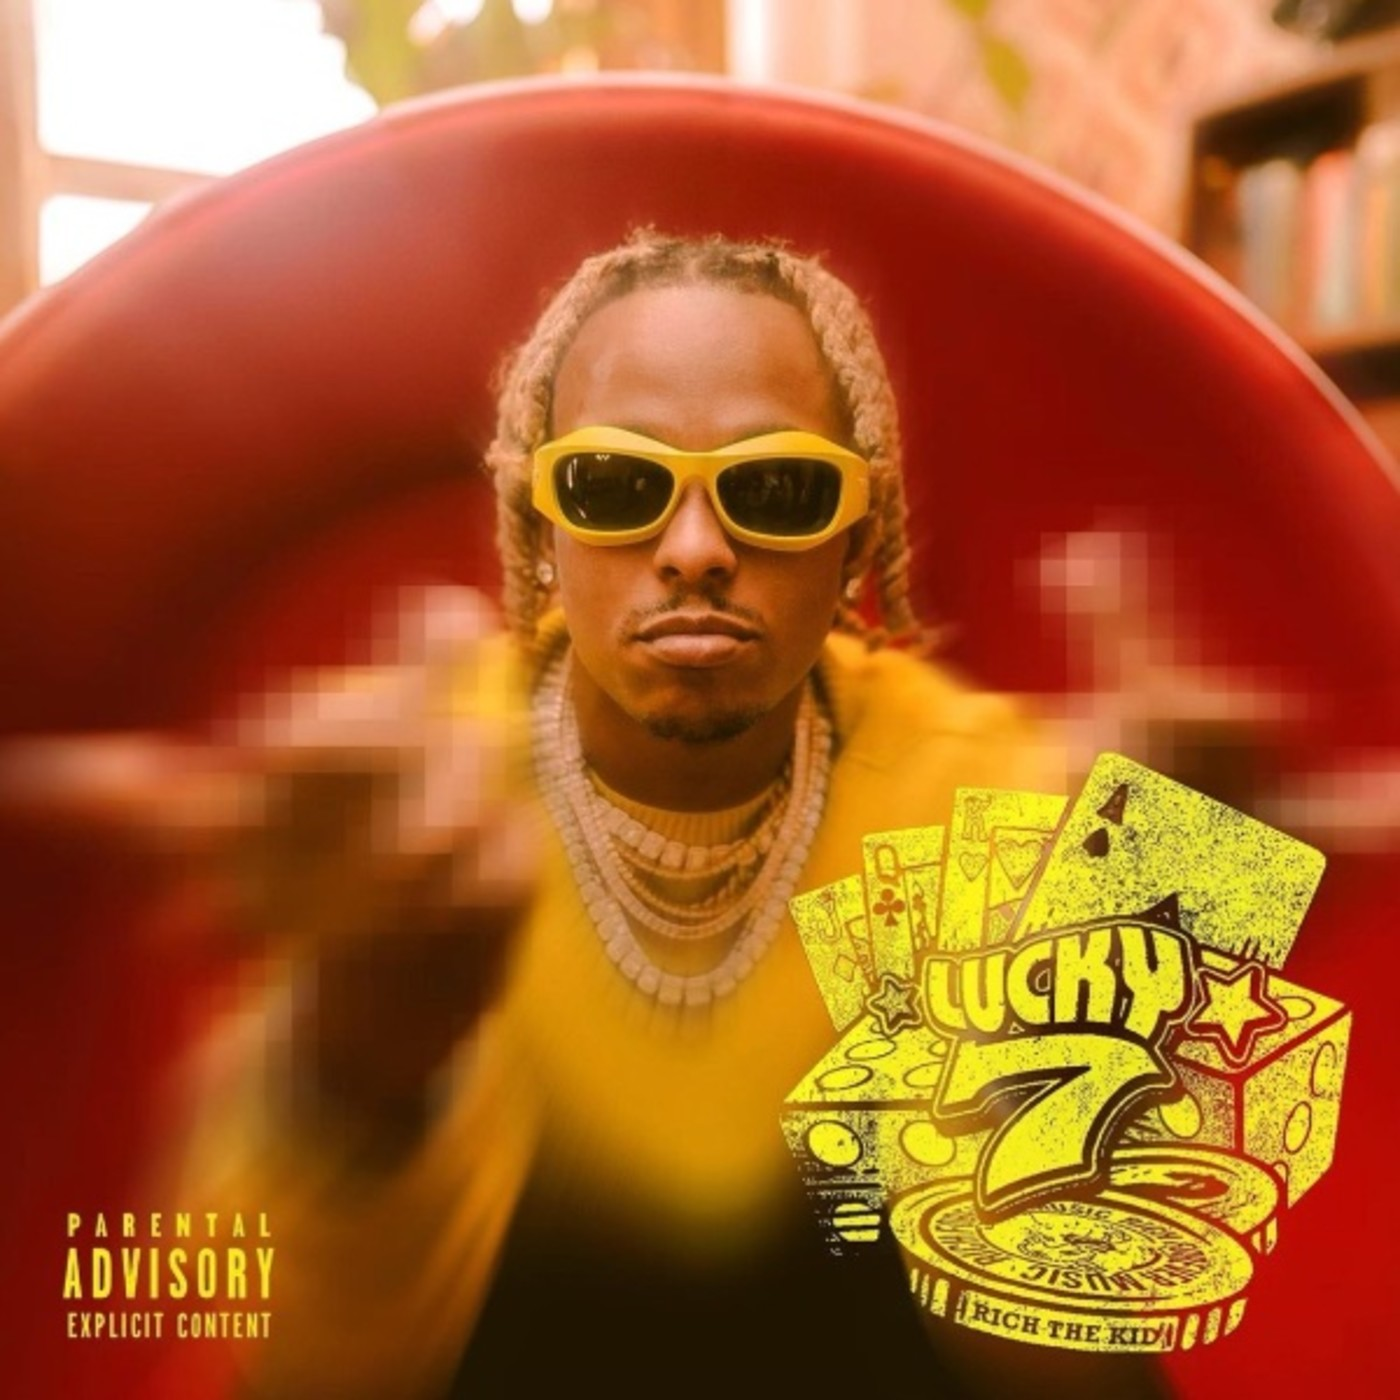 Rich the Kid Shares 'Lucky 7' EP f/ DaBaby, Lil Mosey, Rubi Rose, and More